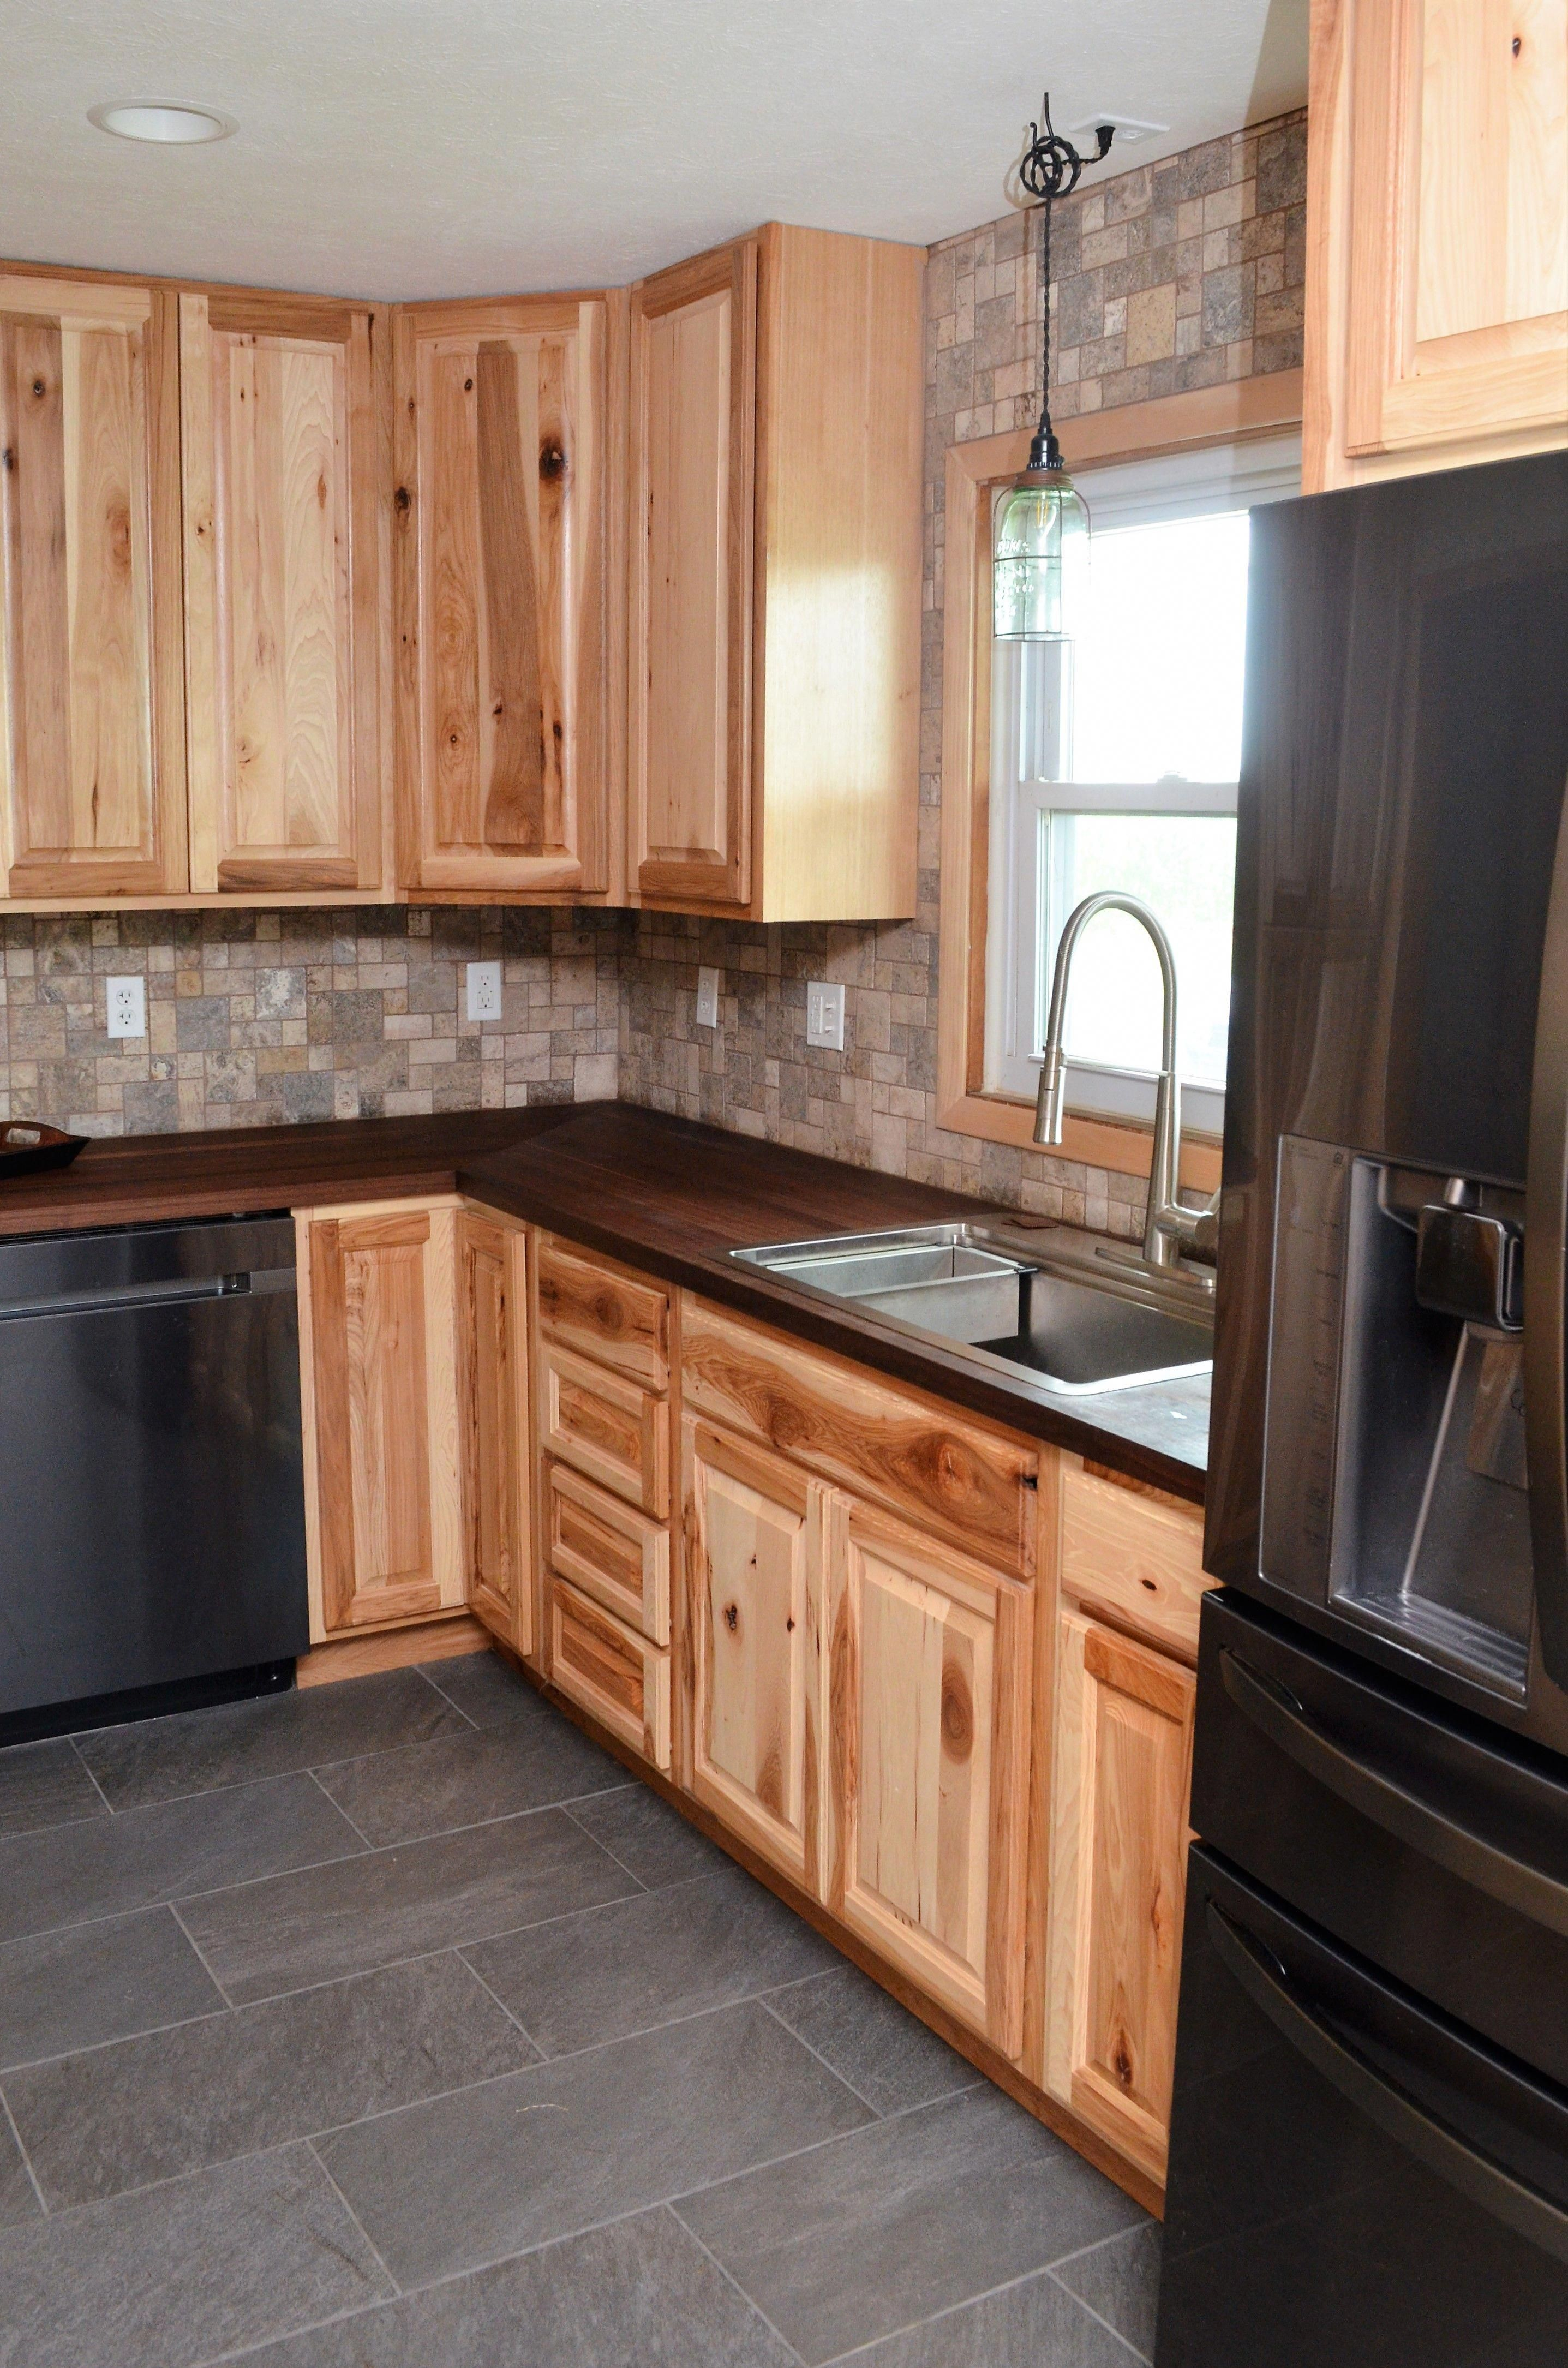 Read More About Beautiful Cabinets Kitchenideasdecoration Kitchenremodeldone Kitchenrenovati Beautiful Kitchen Cabinets Hickory Kitchen New Kitchen Cabinets